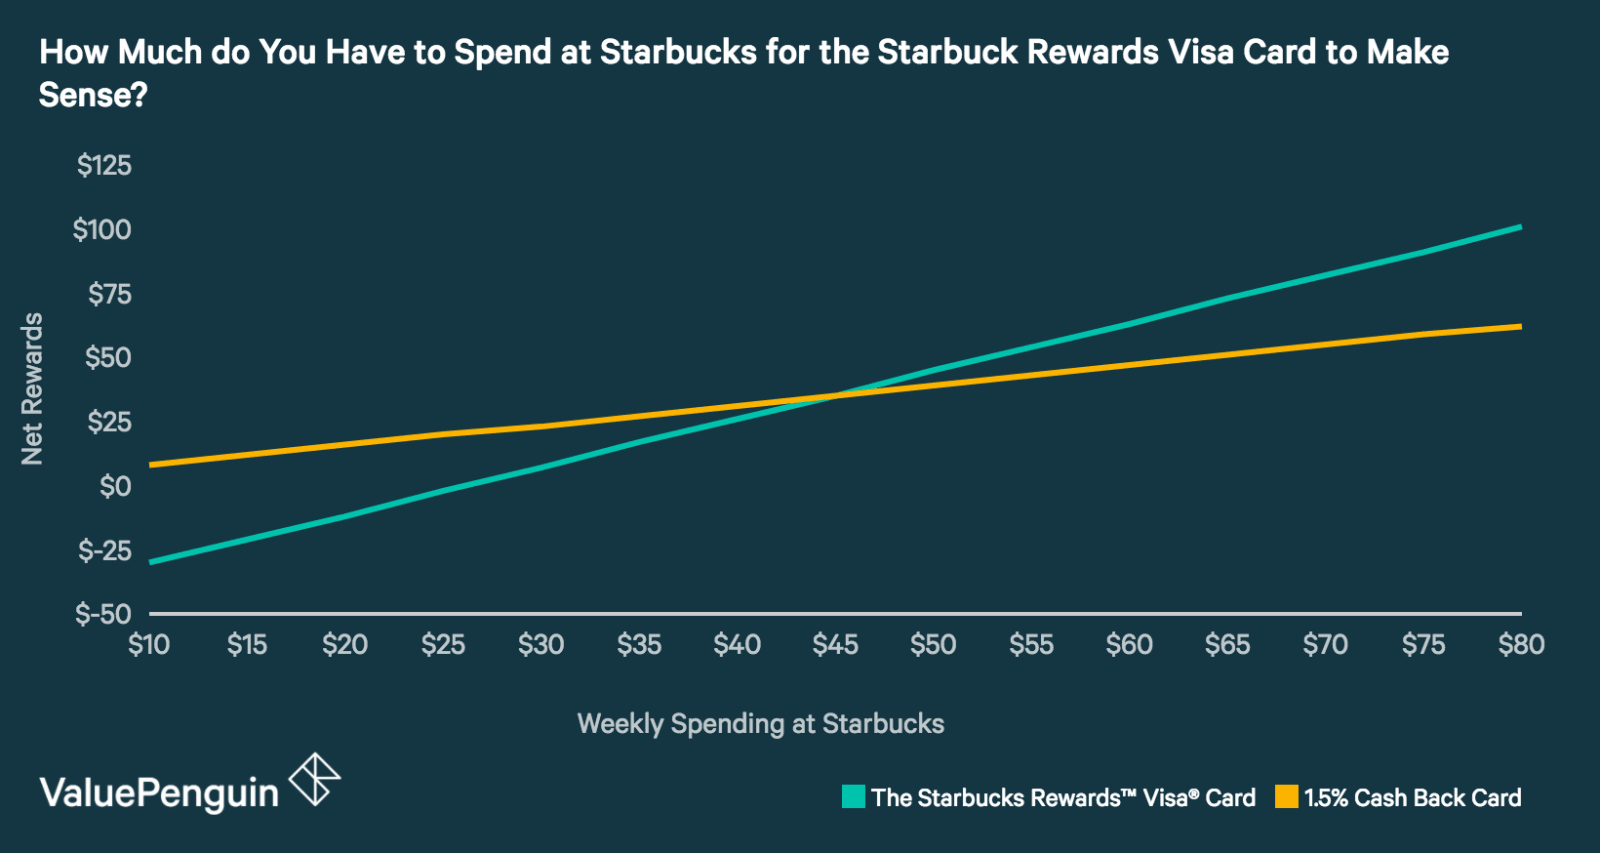 How Much do you Have to Spend at Starbucks for the Starbucks Rewards Card to be Worth It?